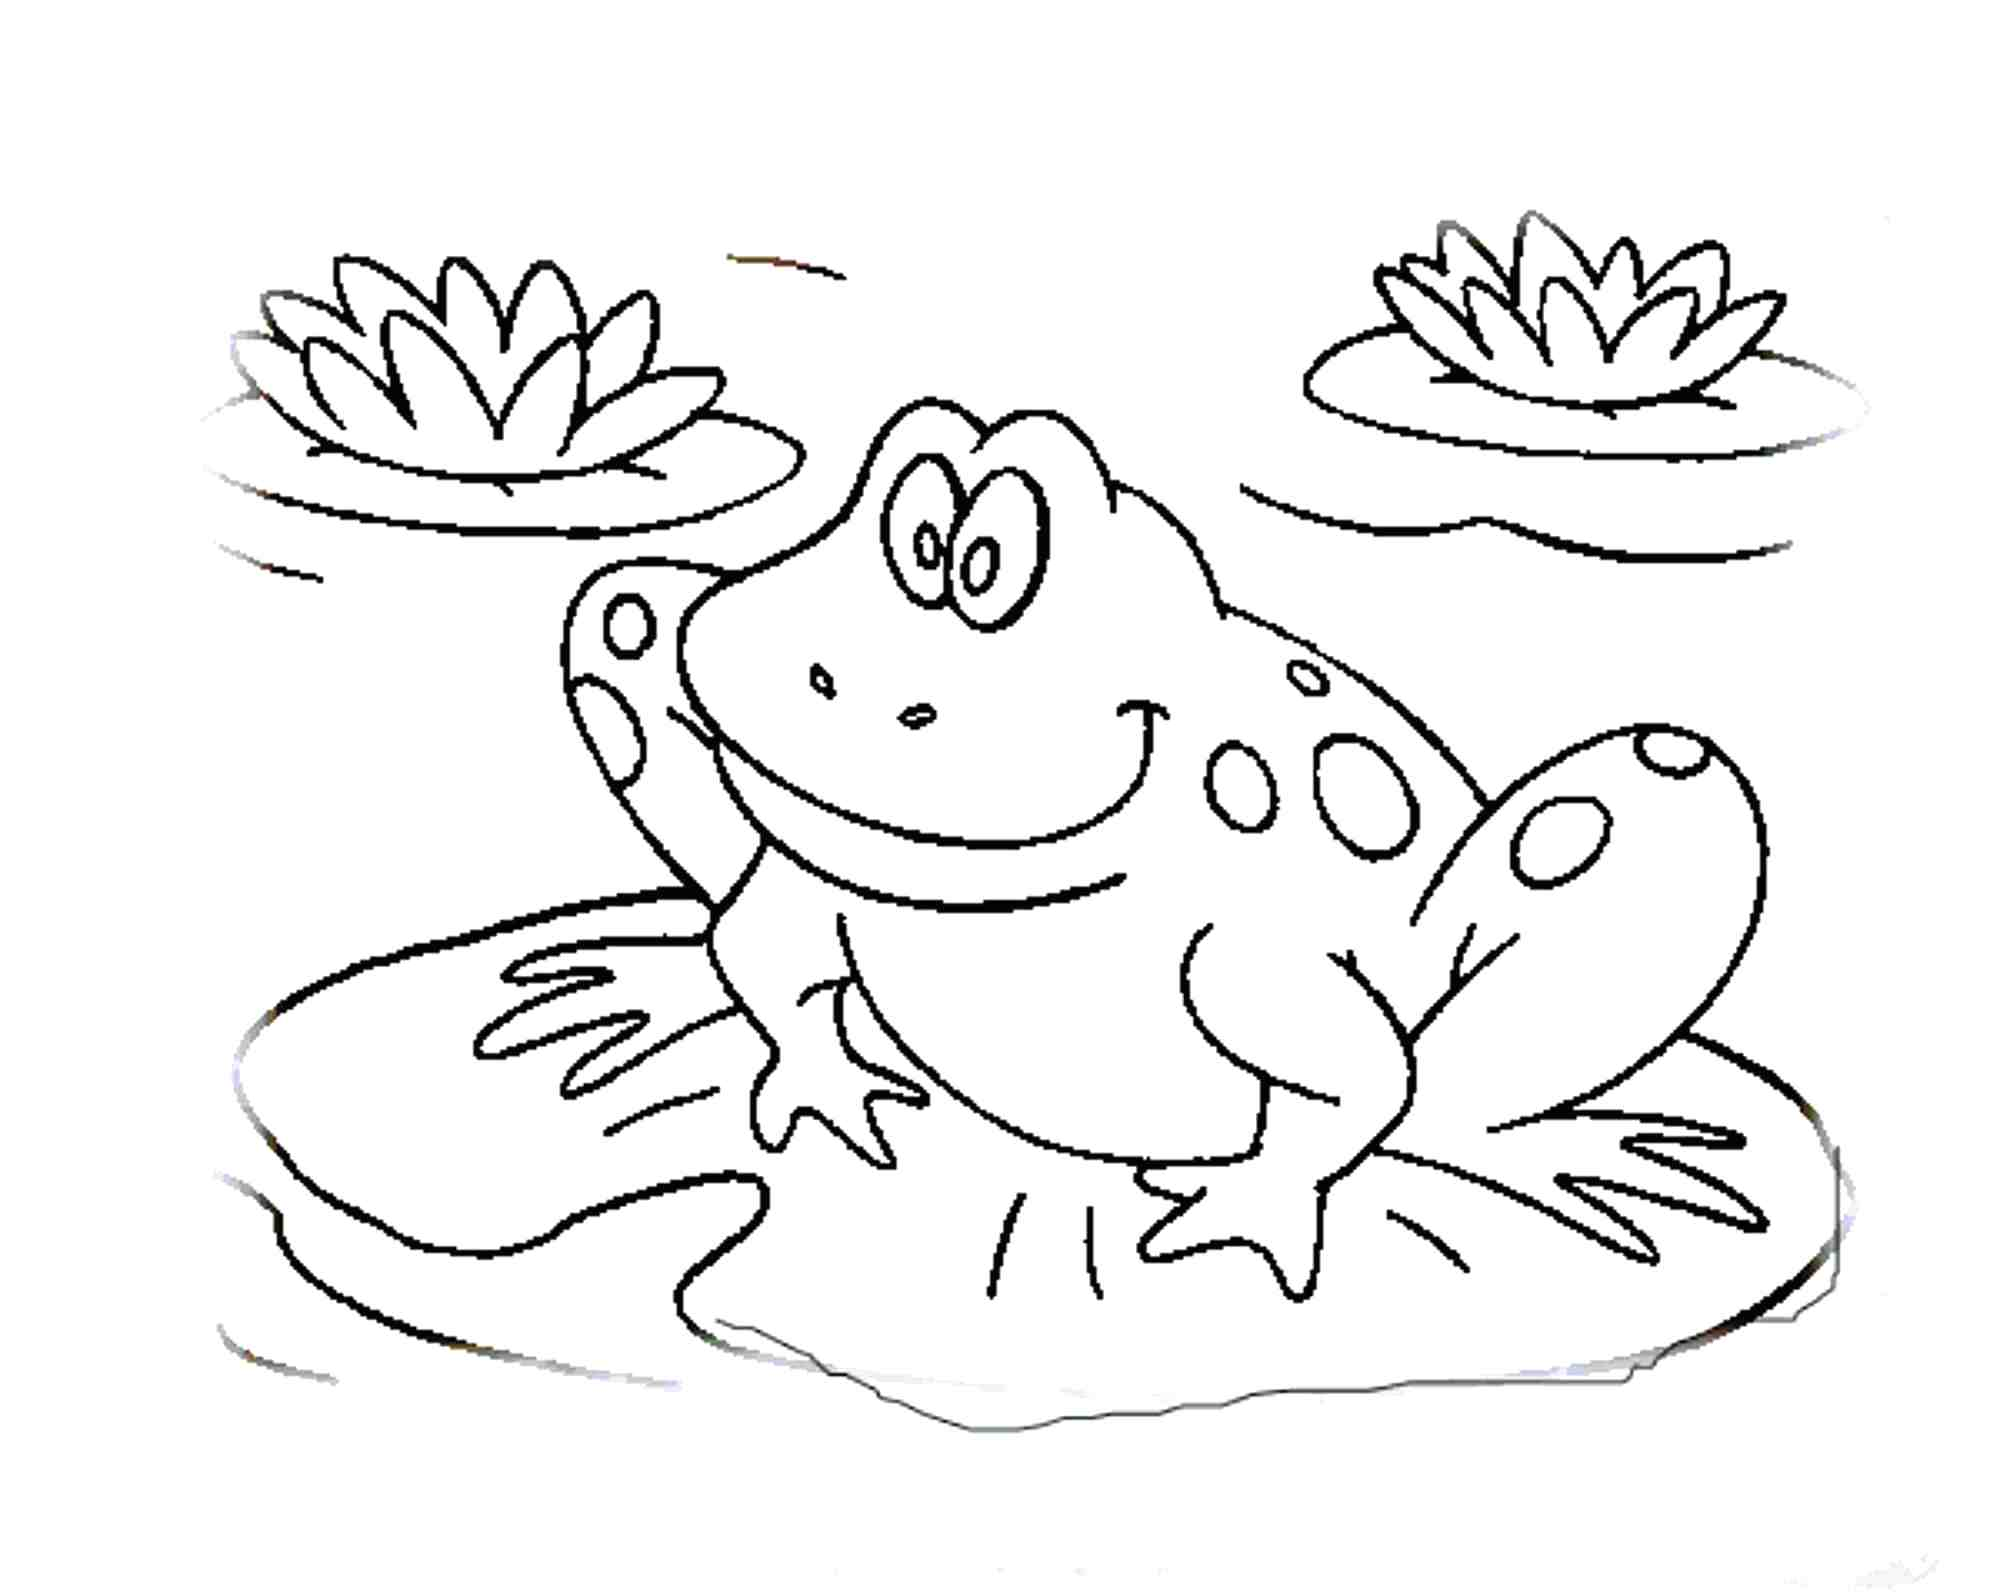 Leap Frog Drawing at GetDrawings.com | Free for personal use Leap ...